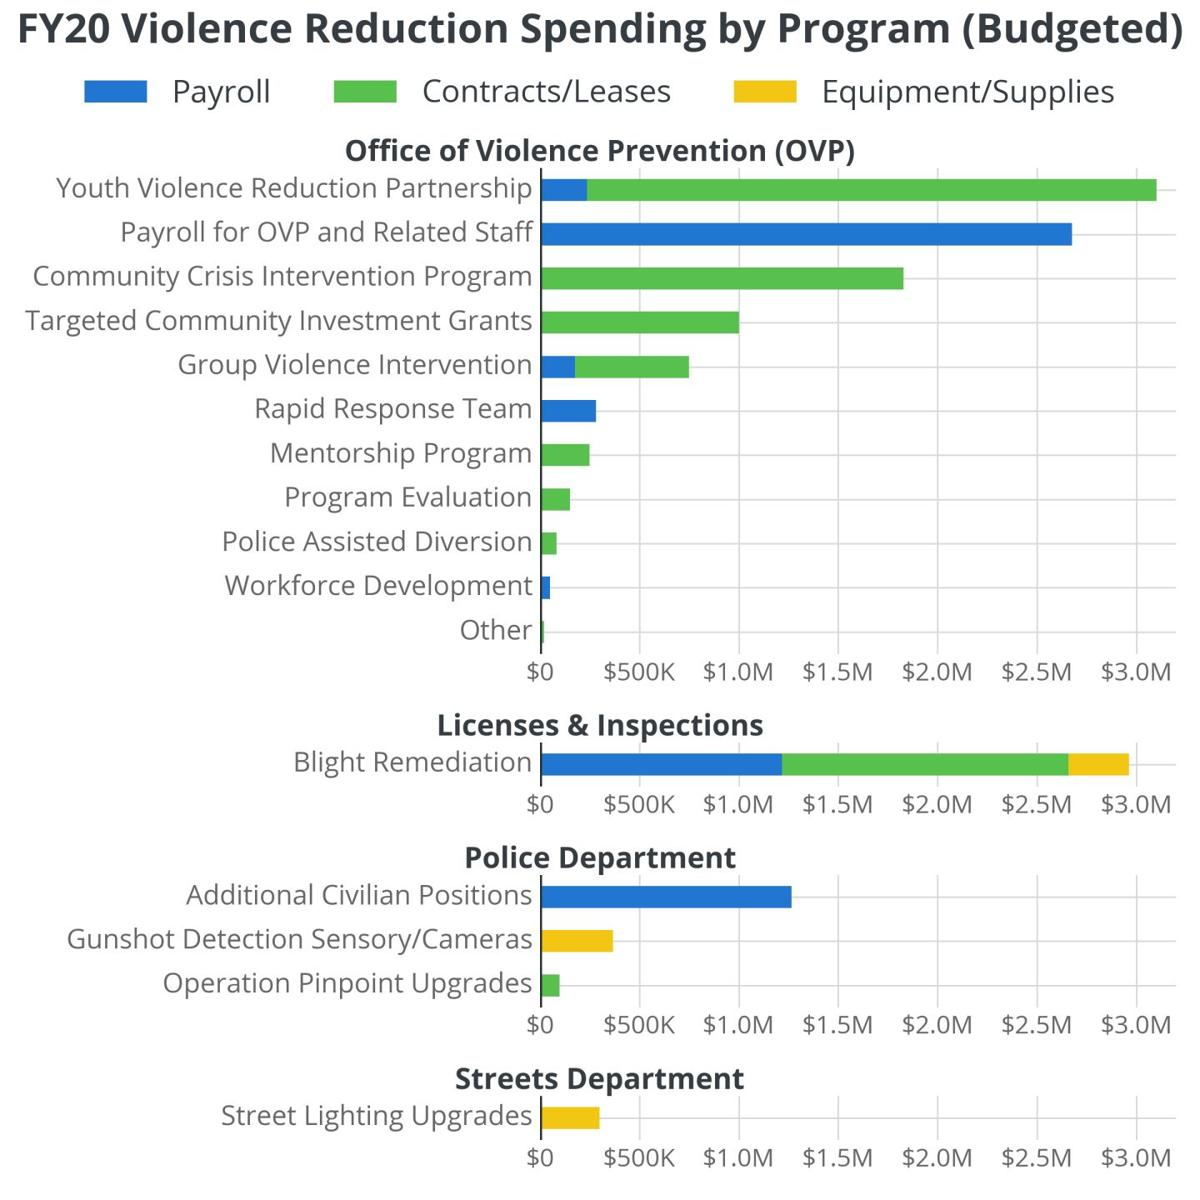 Fiscal Year 2020 Gun Violence Reduction Spending